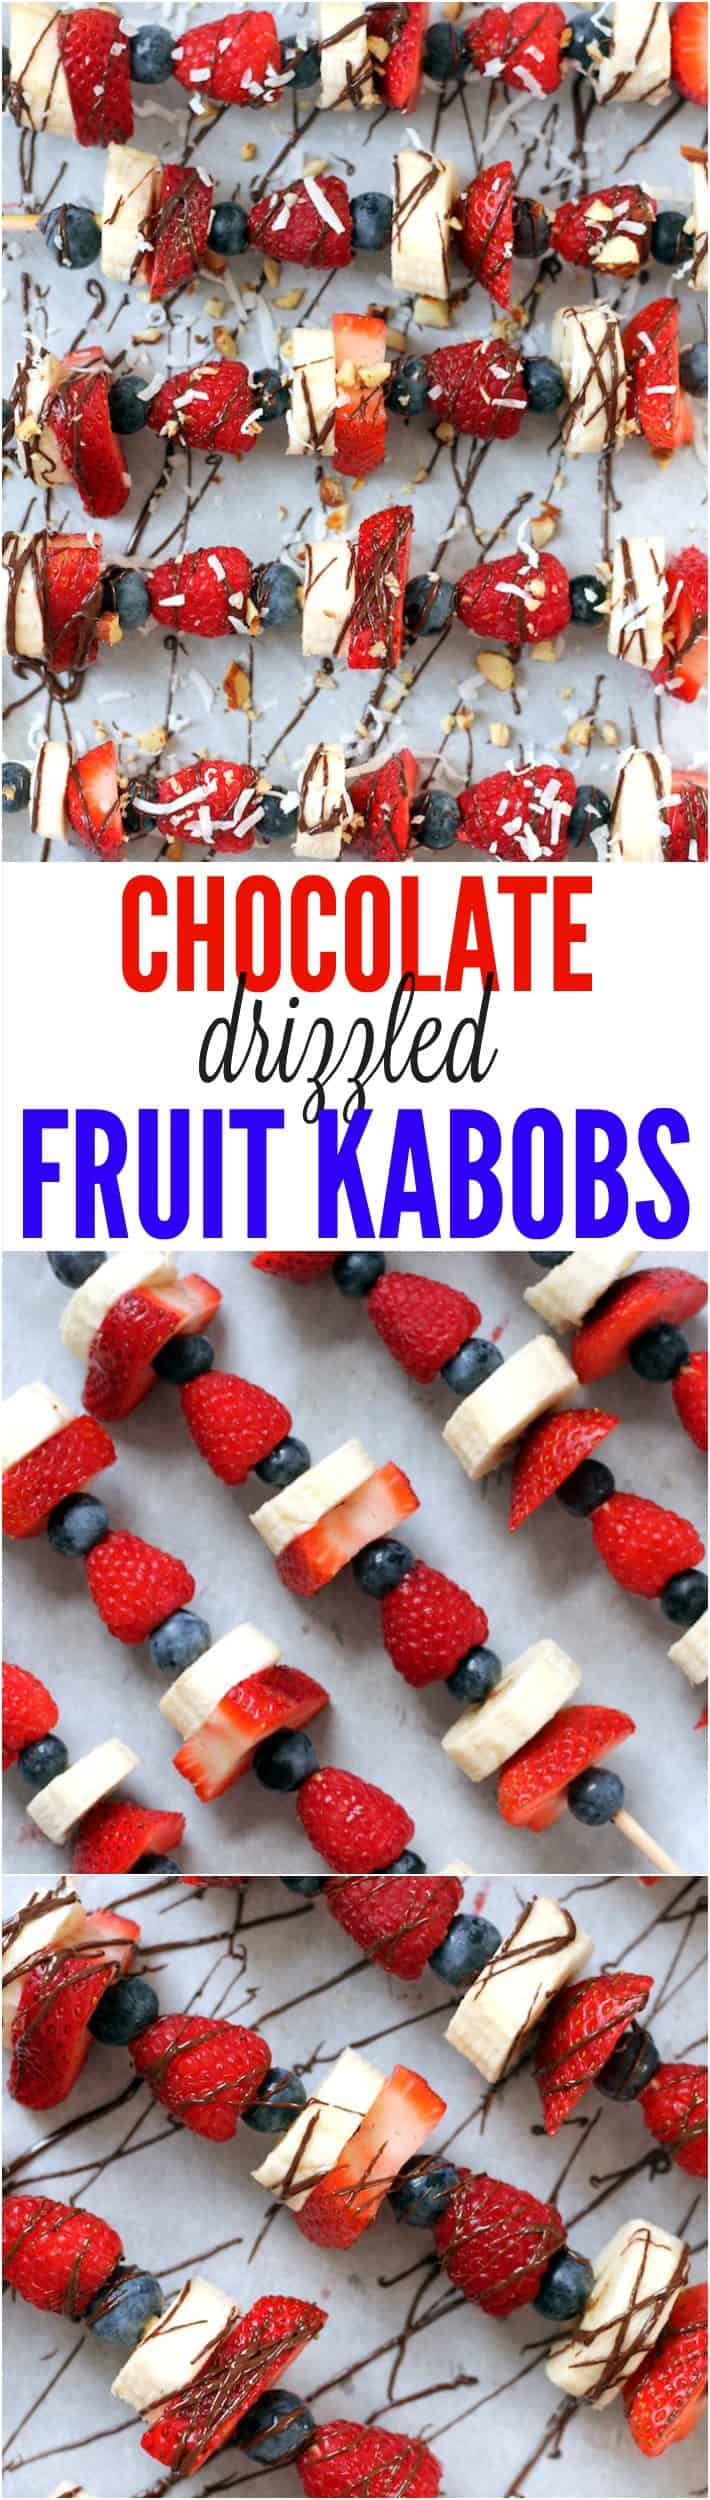 Chocolate Drizzled Fruit Kabobs are the perfect healthy party treat for kids and adults alike!